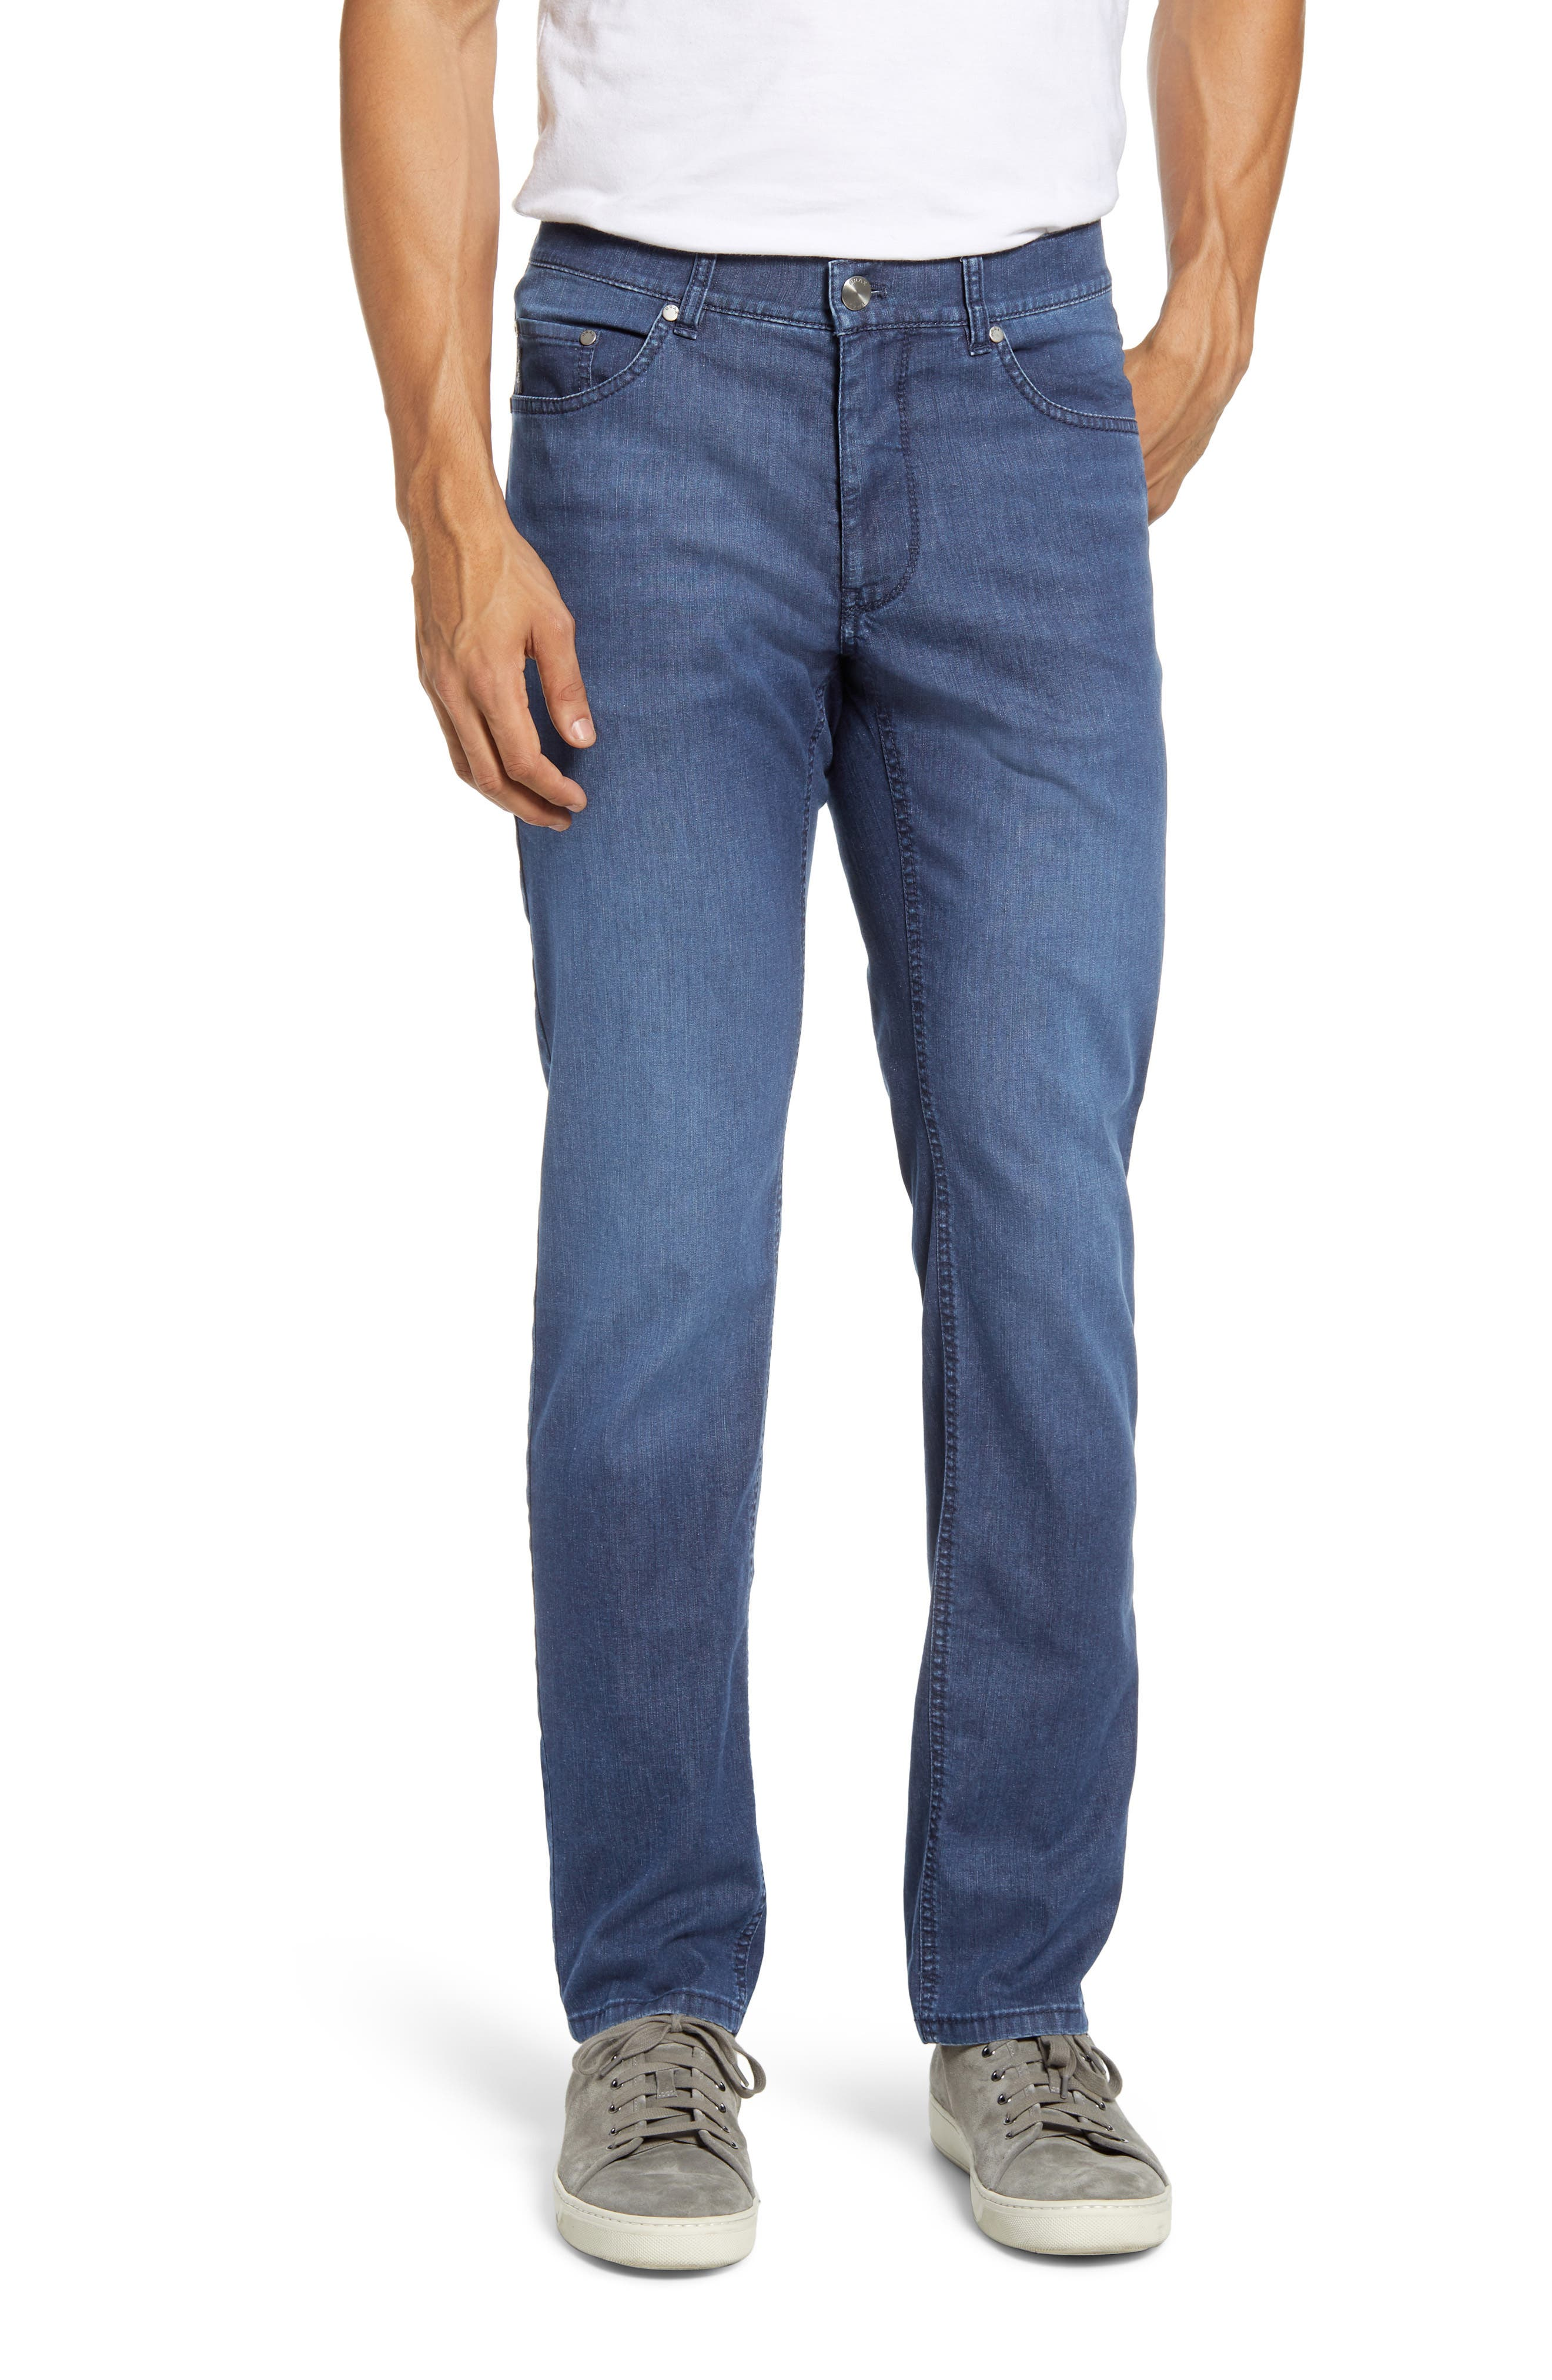 Luminous sanding and fading burnish the casual blue wash of jeans cut in a slim fit from lightweight stretch denim that\\\'s made with reduced environmental impact. Style Name: Brax Cooper Slim Fit Jeans (Ocean Water). Style Number: 5988986. Available in stores.